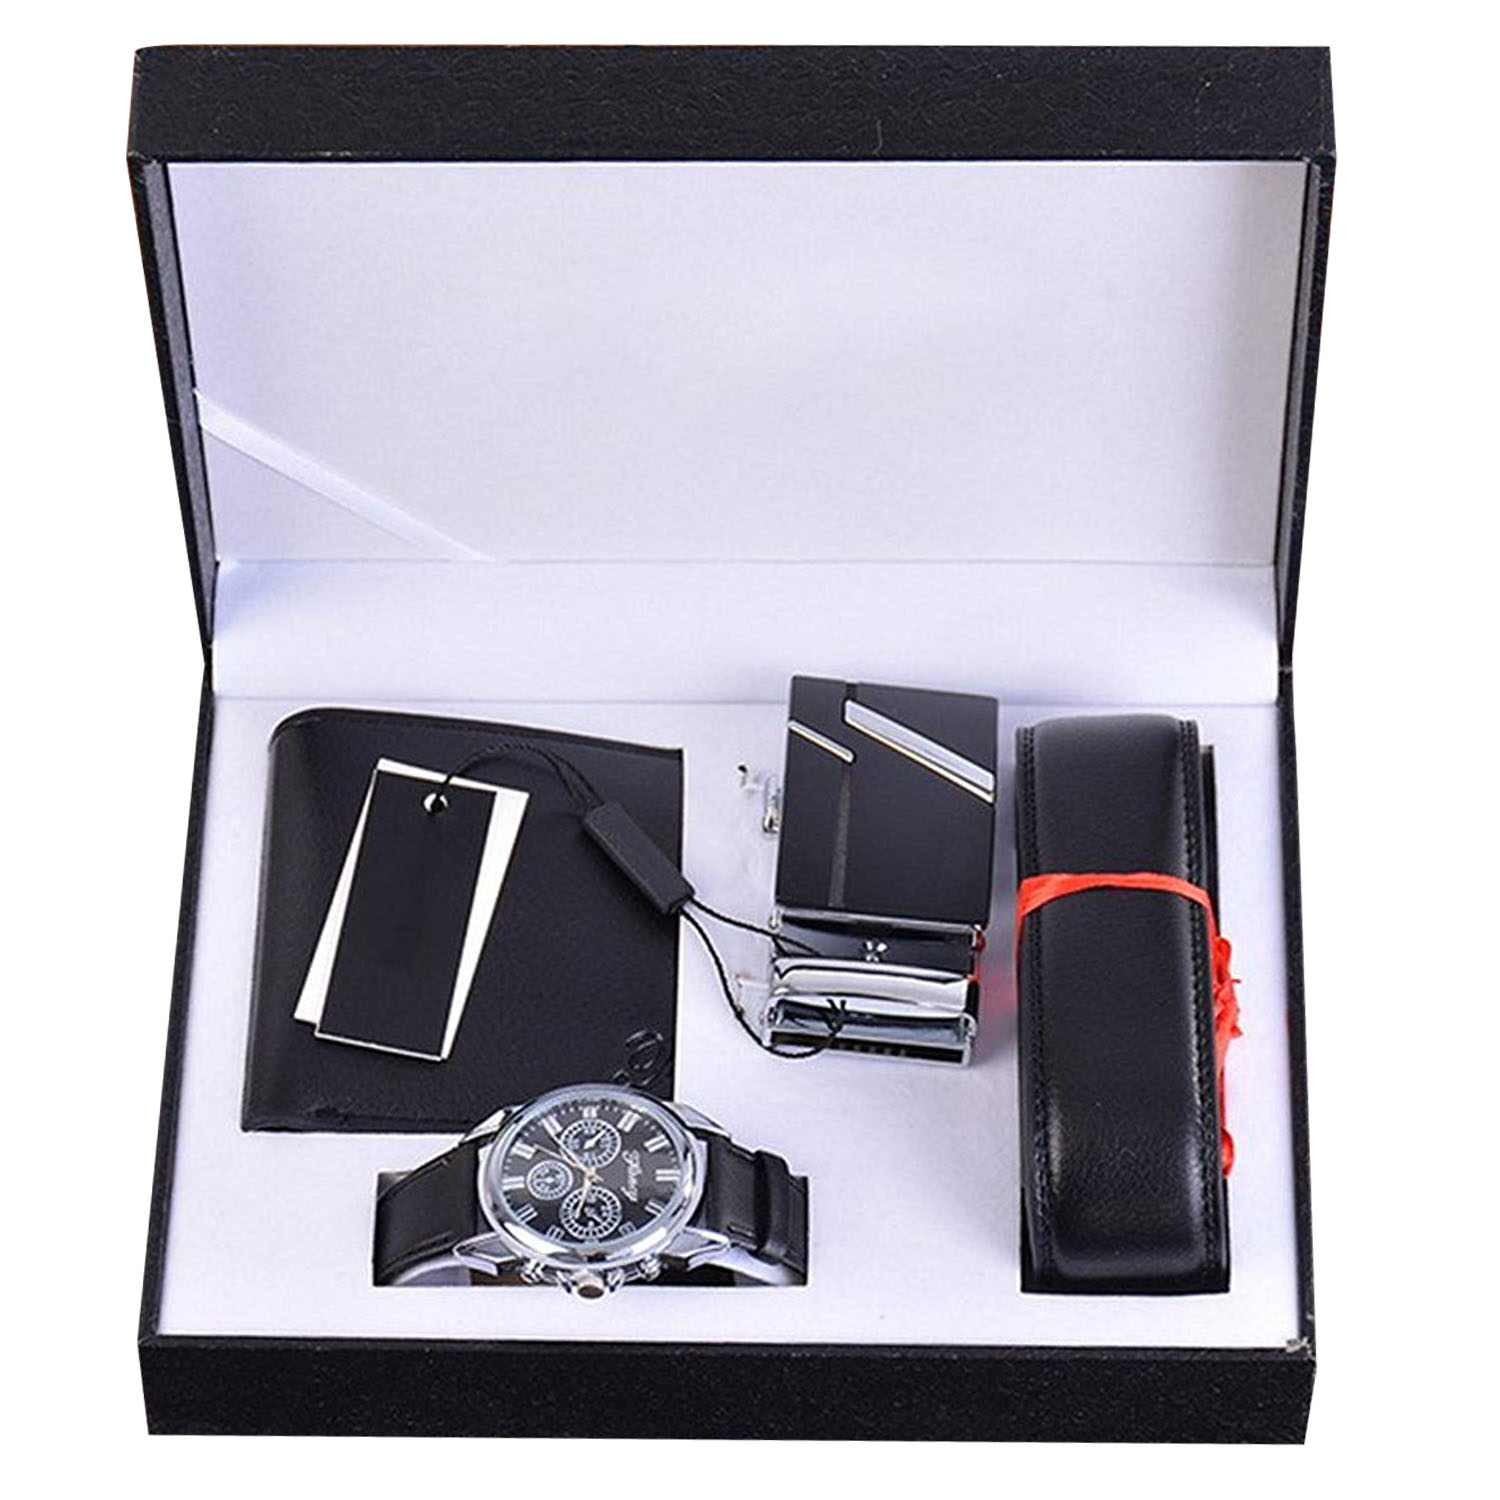 цена Mens Black Artificial Leather Quartz Analog Wrist Watch Belt Wallet Set with Box